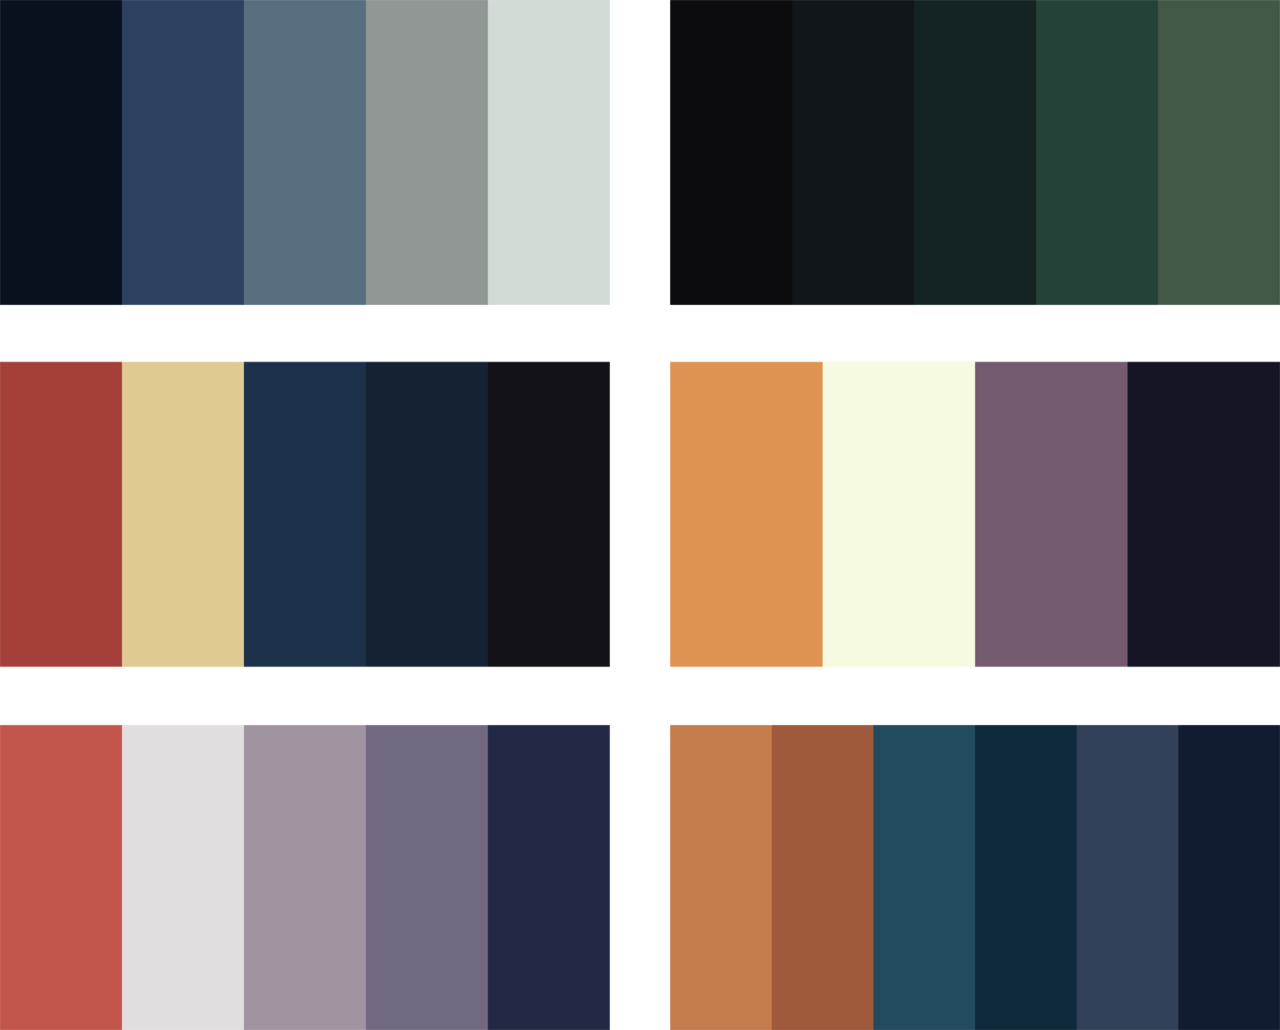 ryxchordata:   I got incredibly bored today so I made a bunch of palettes thought you might want to see them